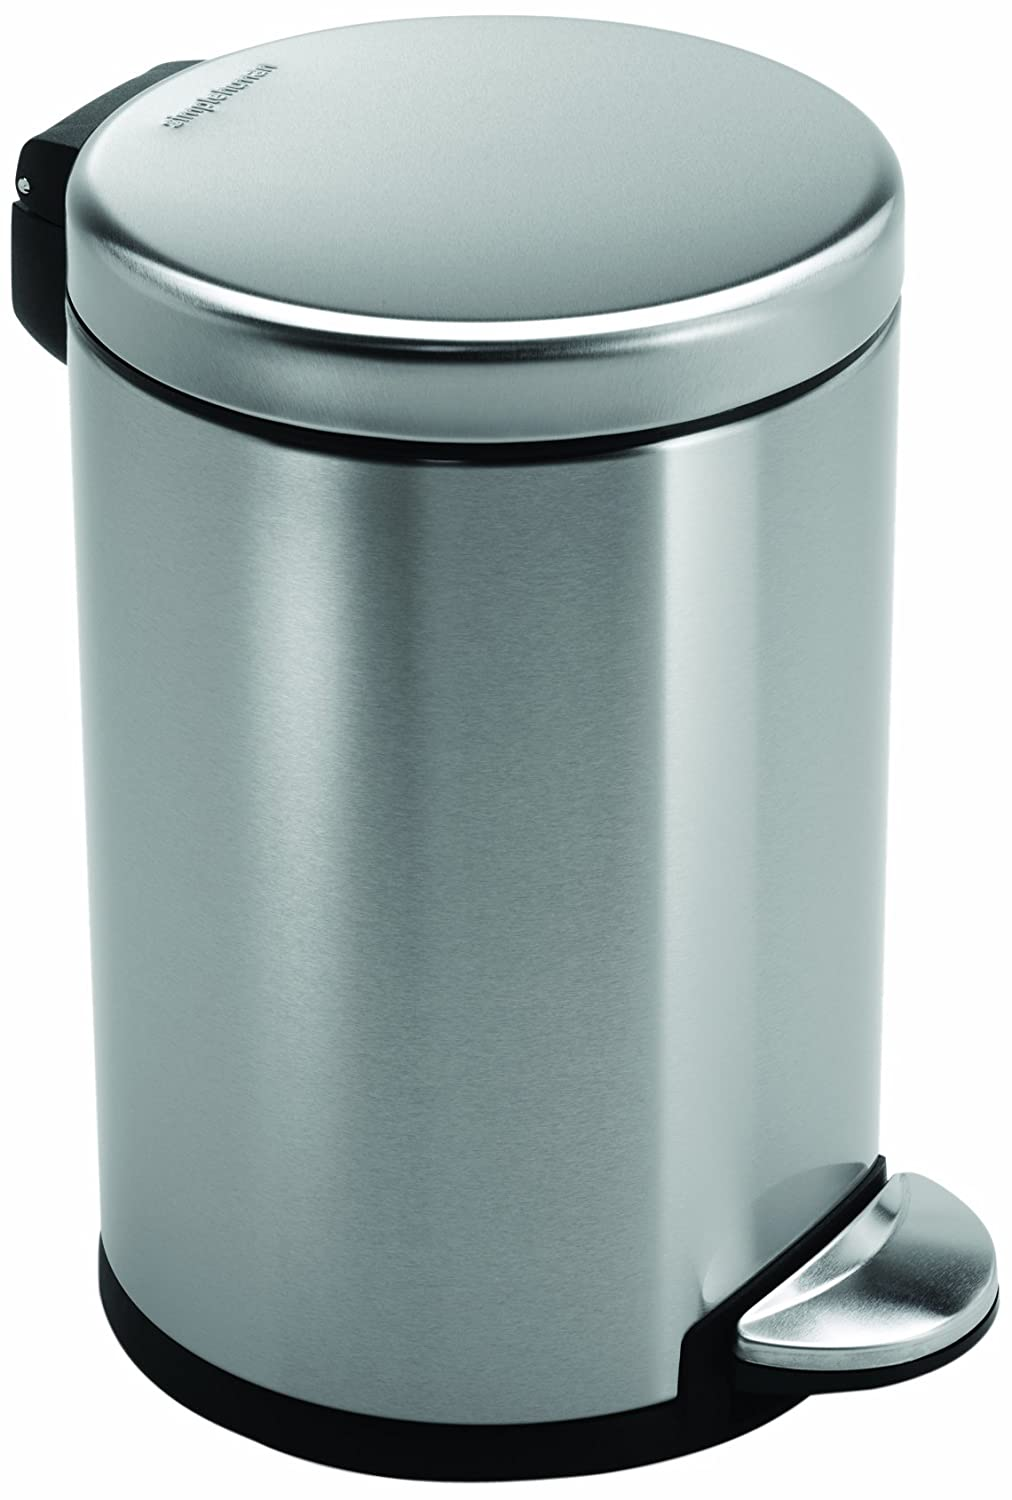 simplehuman Deluxe Mini Round Pedal Bin with Fingerprint-Proof ...